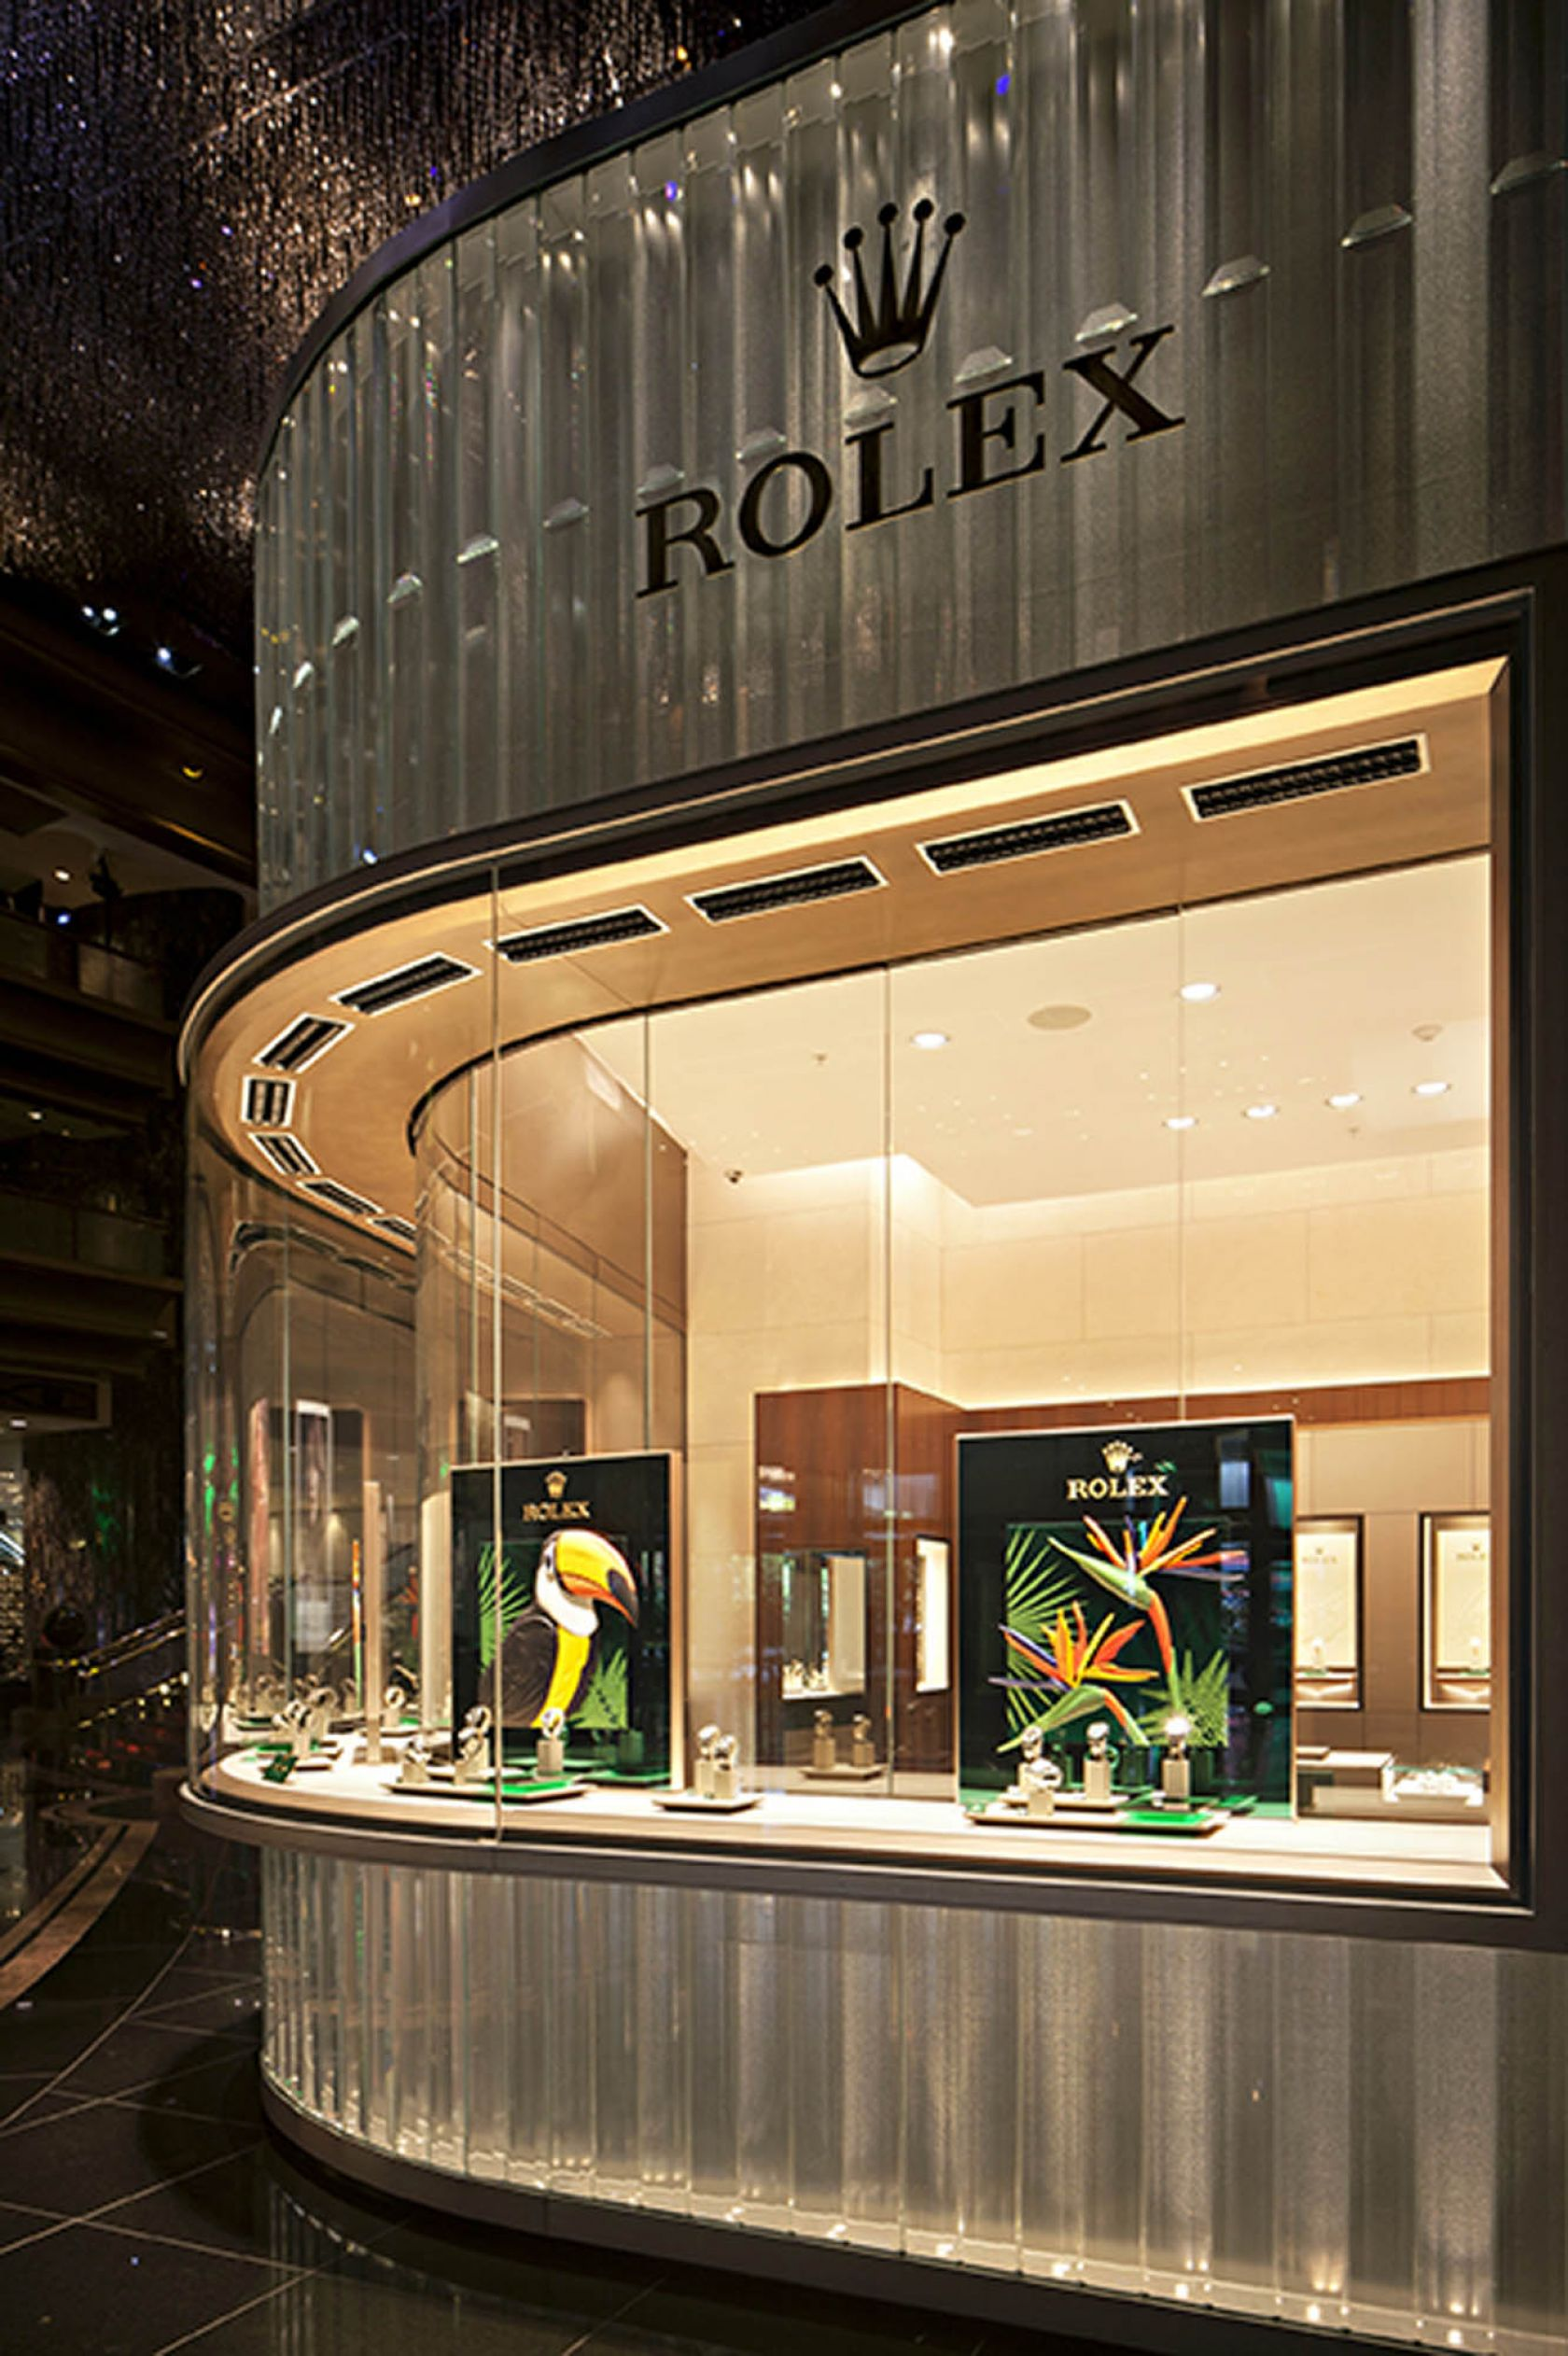 crown casino melbourne atrium curved display rolex feature panel